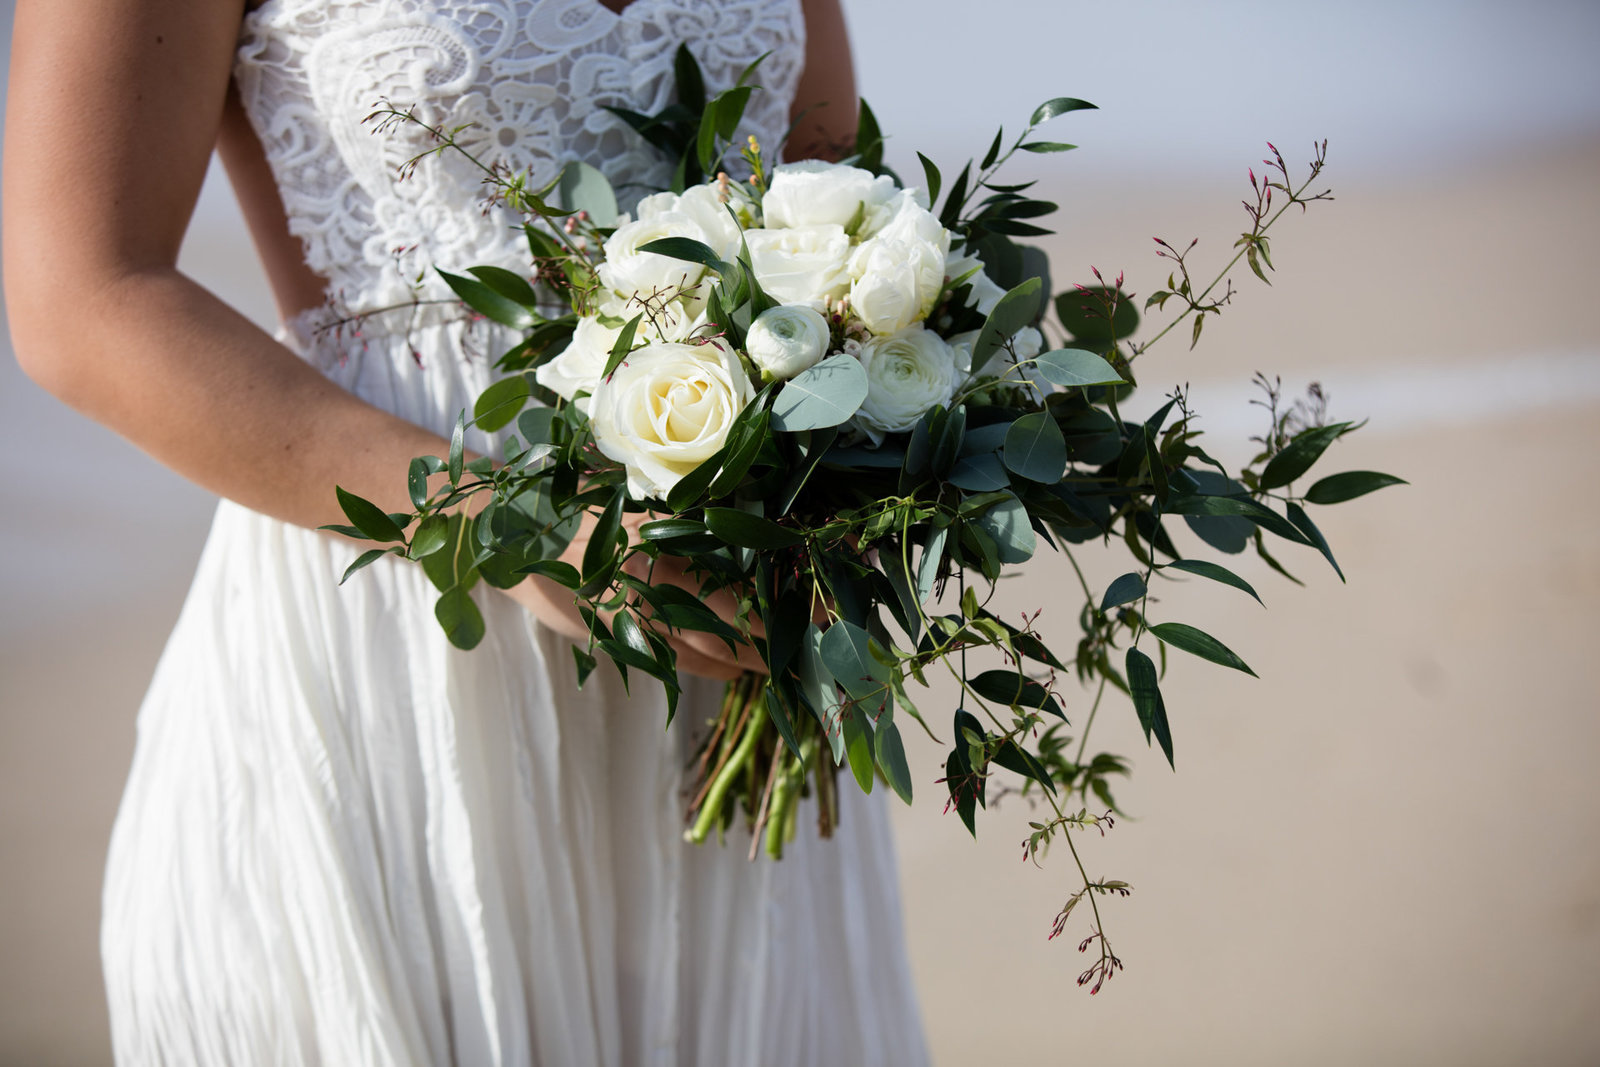 The bouquet is held by the bride in stunning beach engagement session